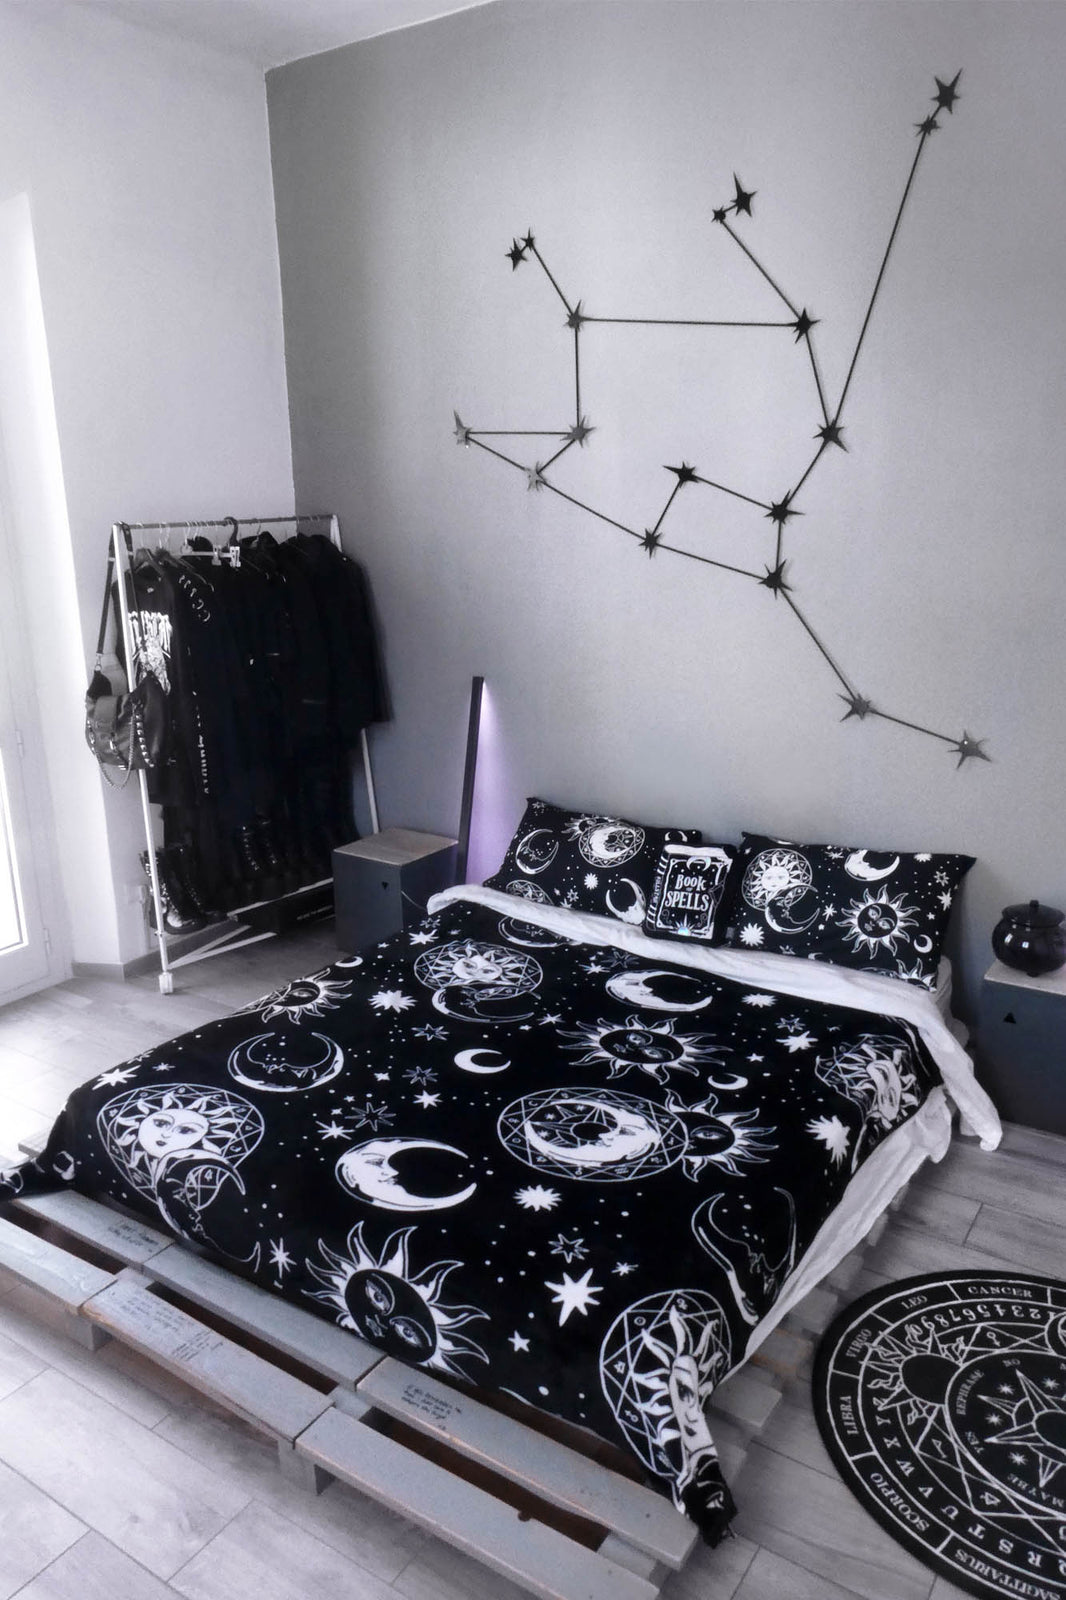 Astral Light Bedspread/Blanket